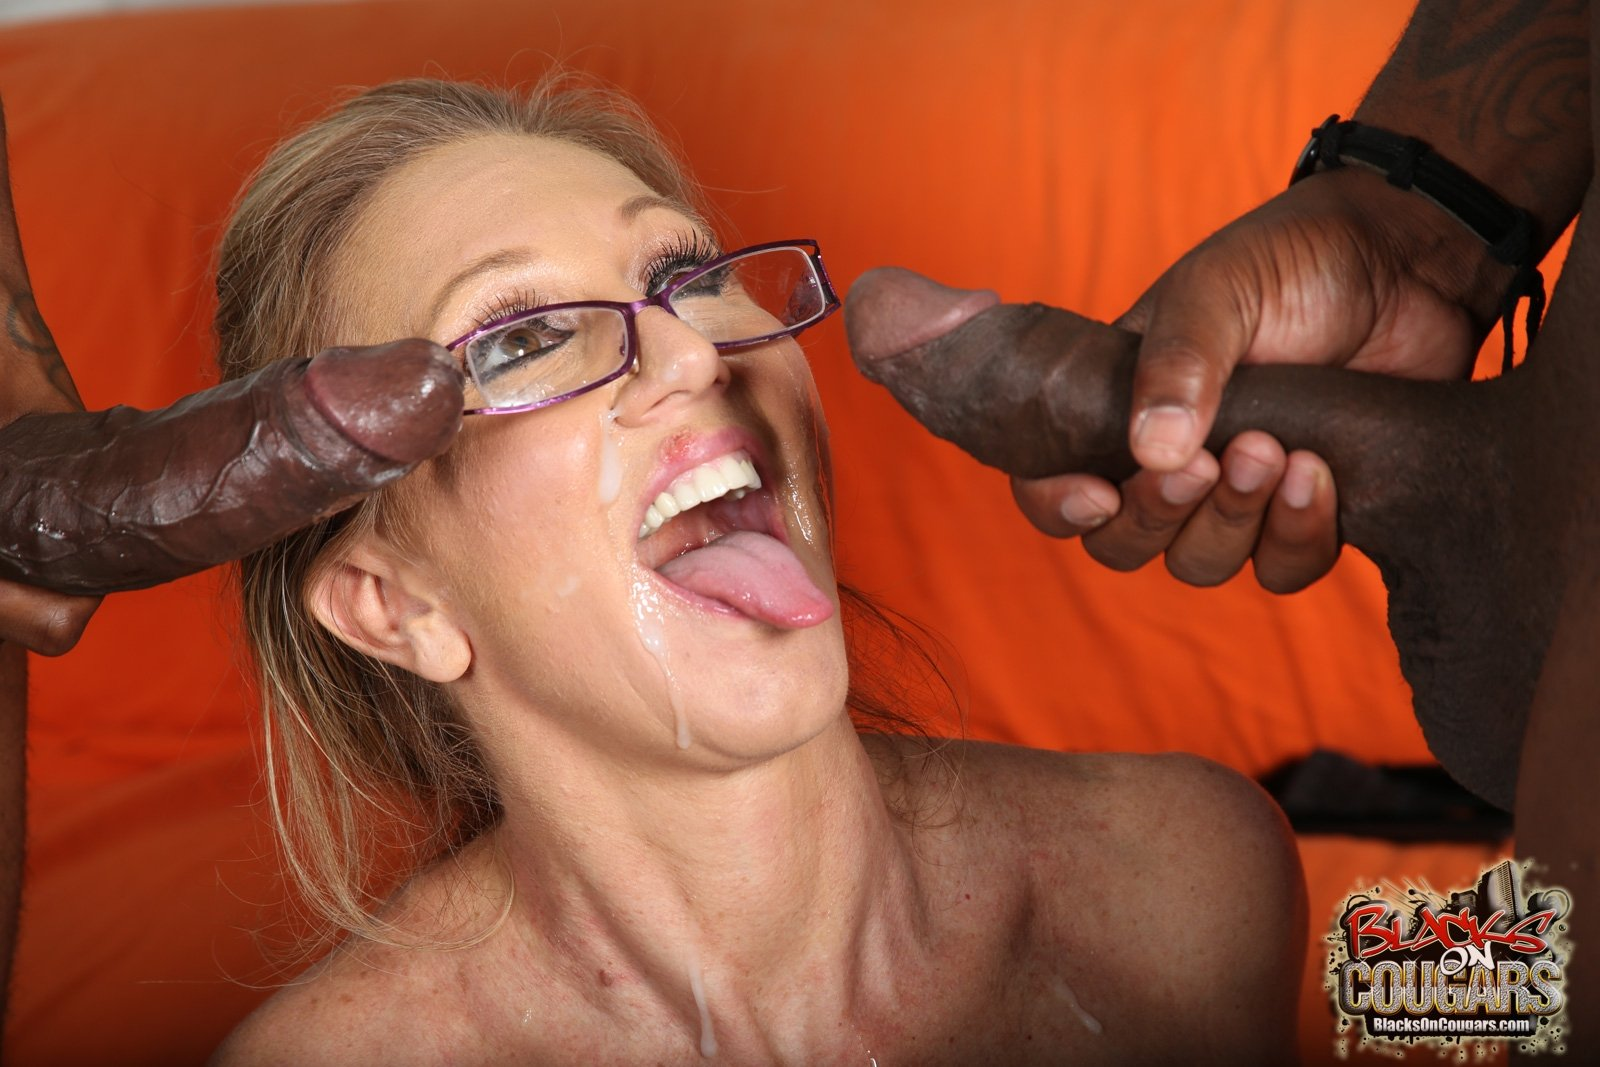 milf-interracial-facial-pictures-lesbian-club-in-florida